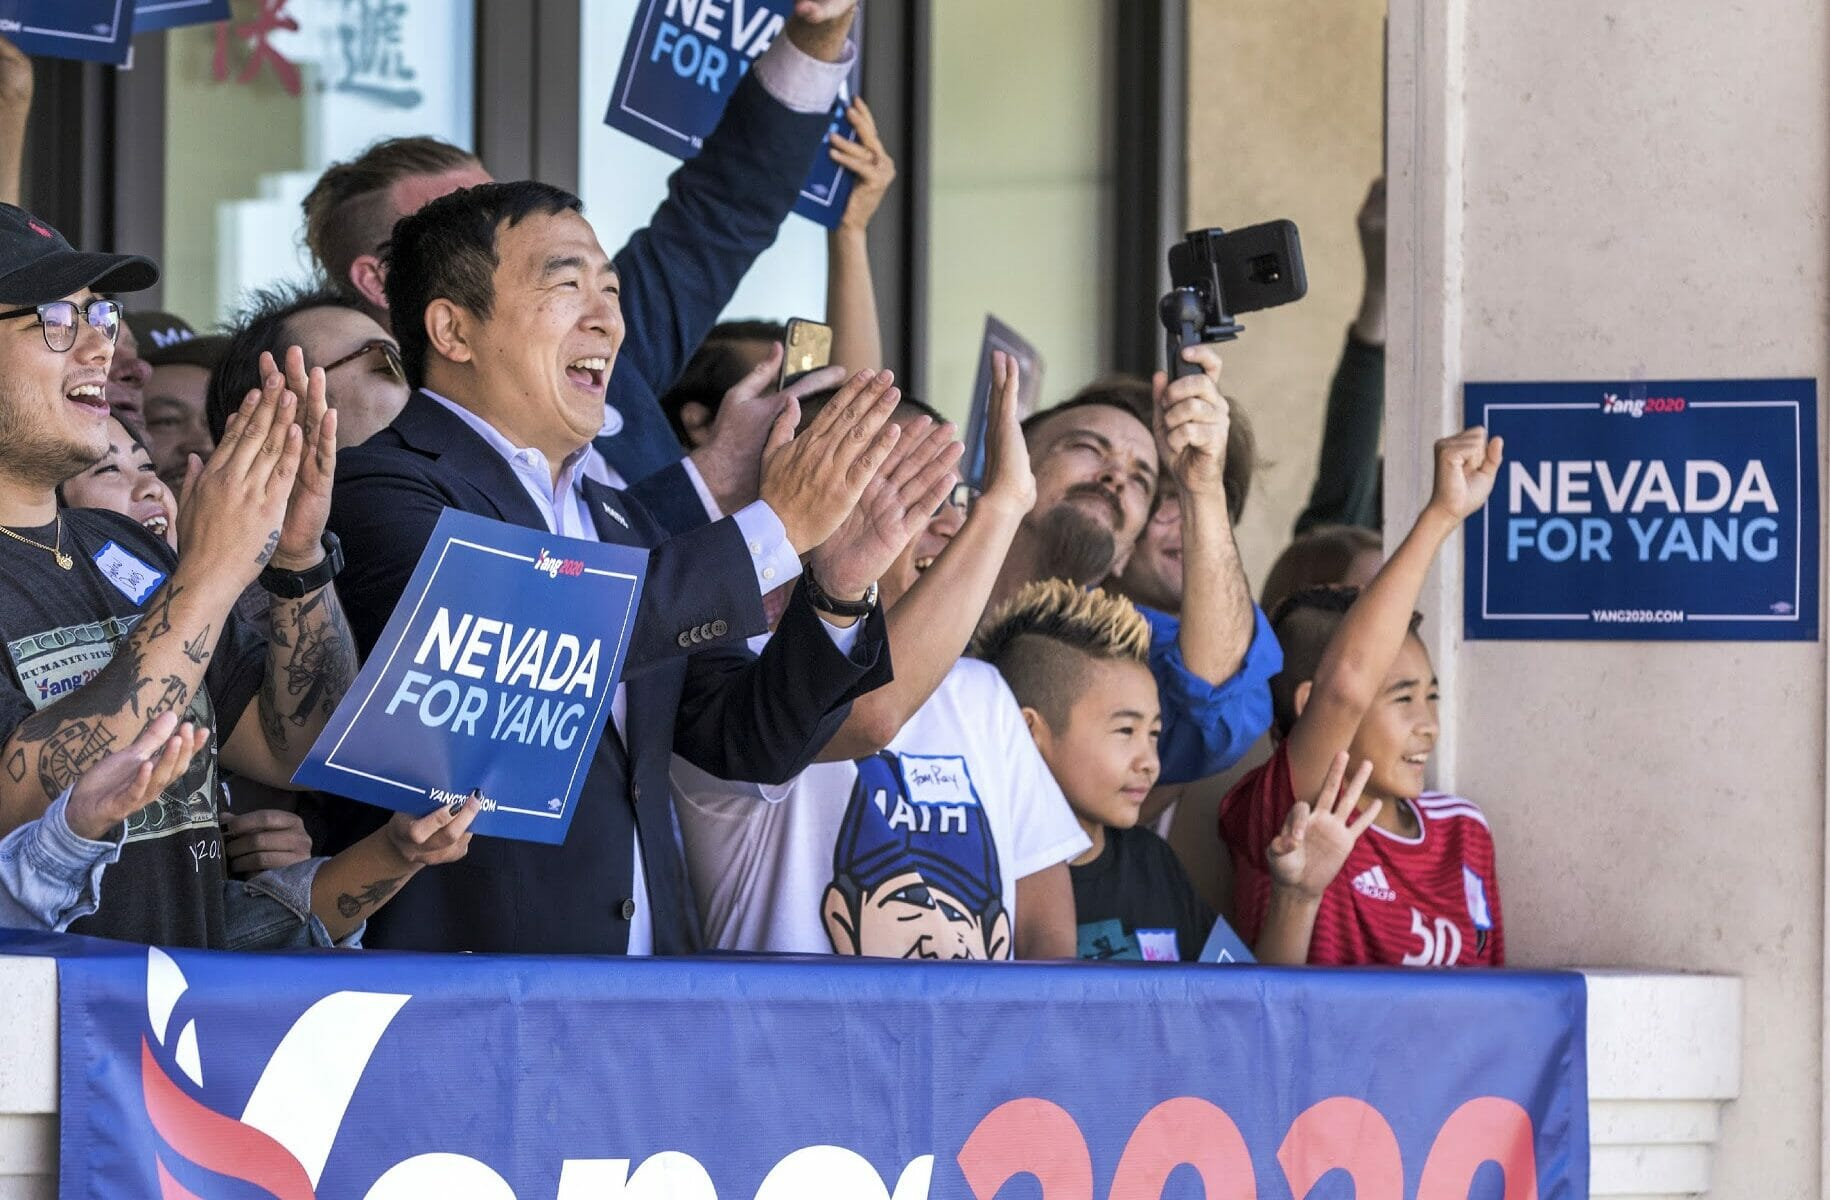 Andrew Yang and supporters